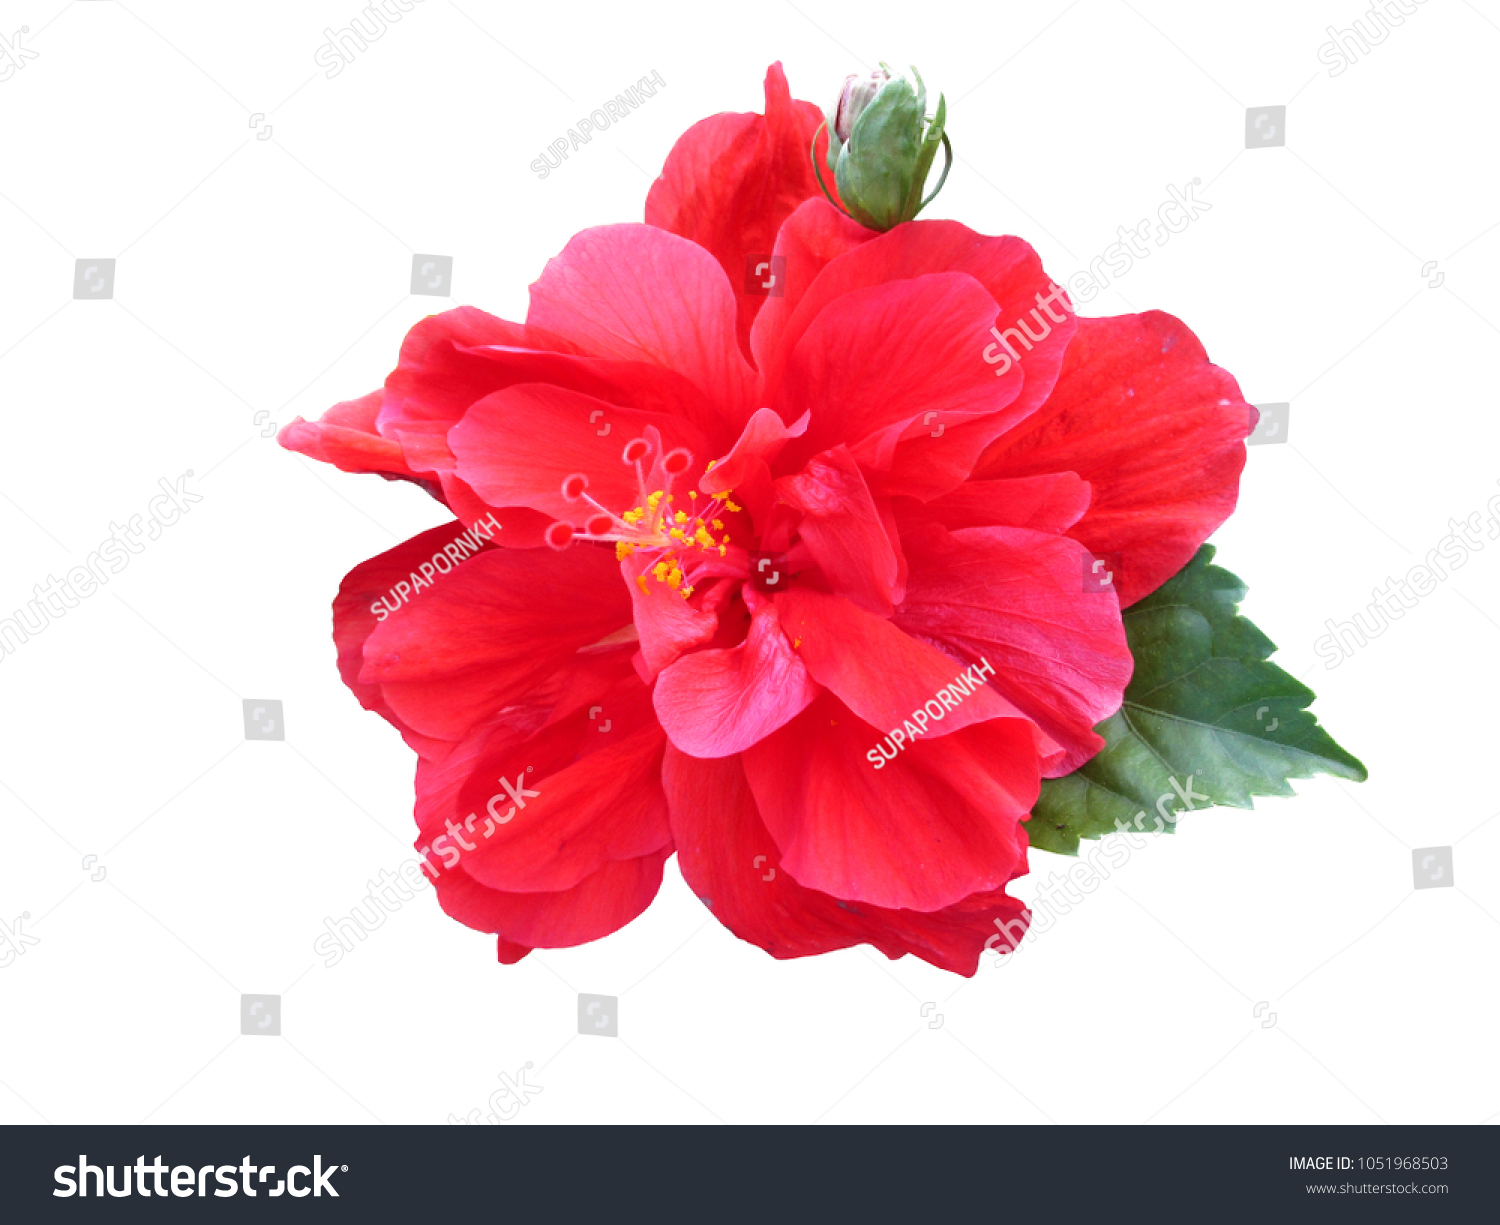 Red hibiscus flower chinese rose shoe stock photo edit now red hibiscus flower or chinese rose shoe flower hawaiian flower with leaves isolated on izmirmasajfo